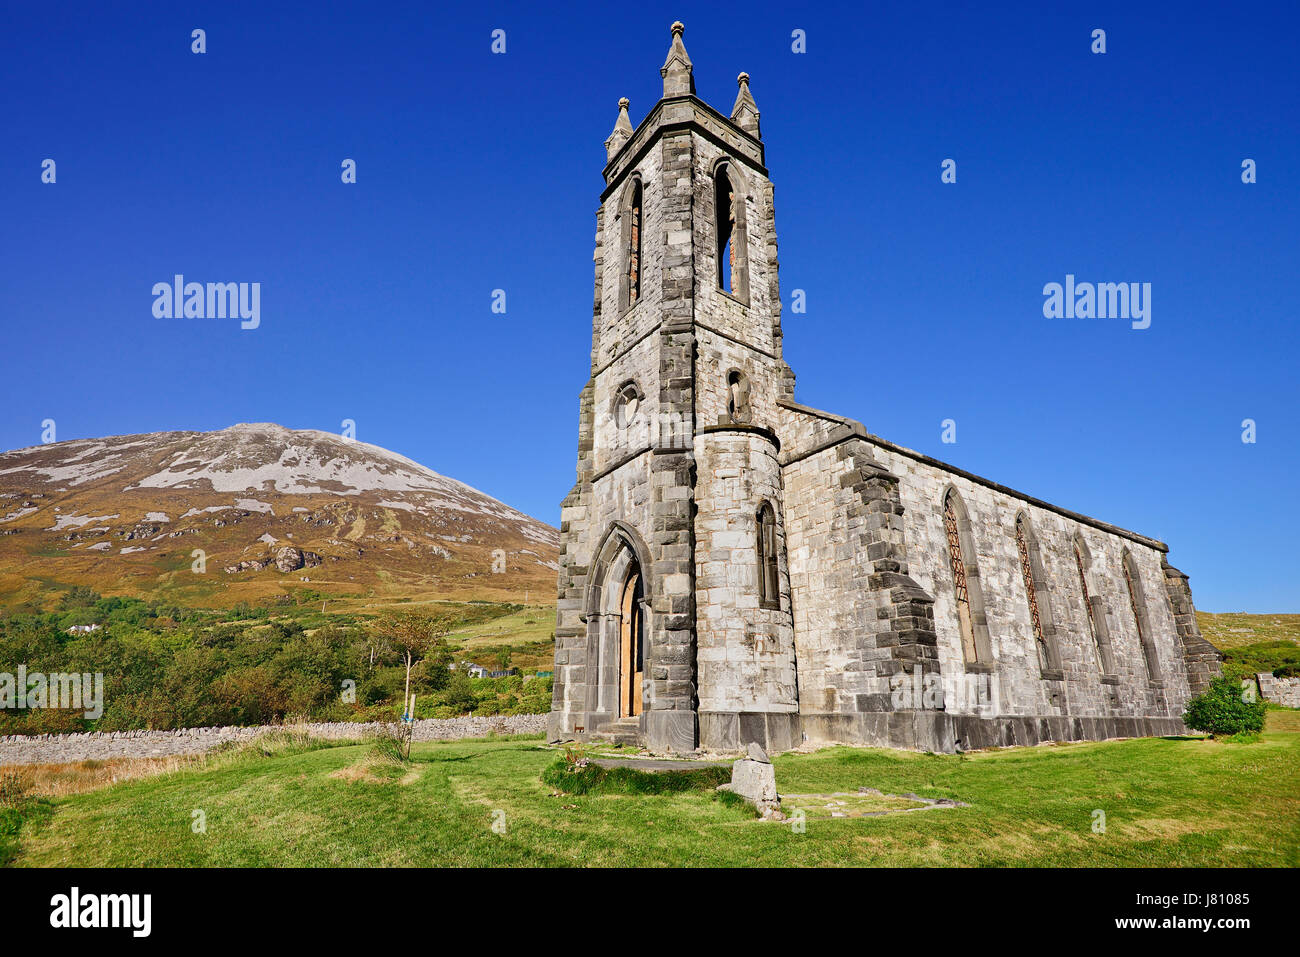 Ireland,County Donegal, Ruin of Dunlewey Church of Ireland building in The Poisoned Glen which was built by Jane - Stock Image